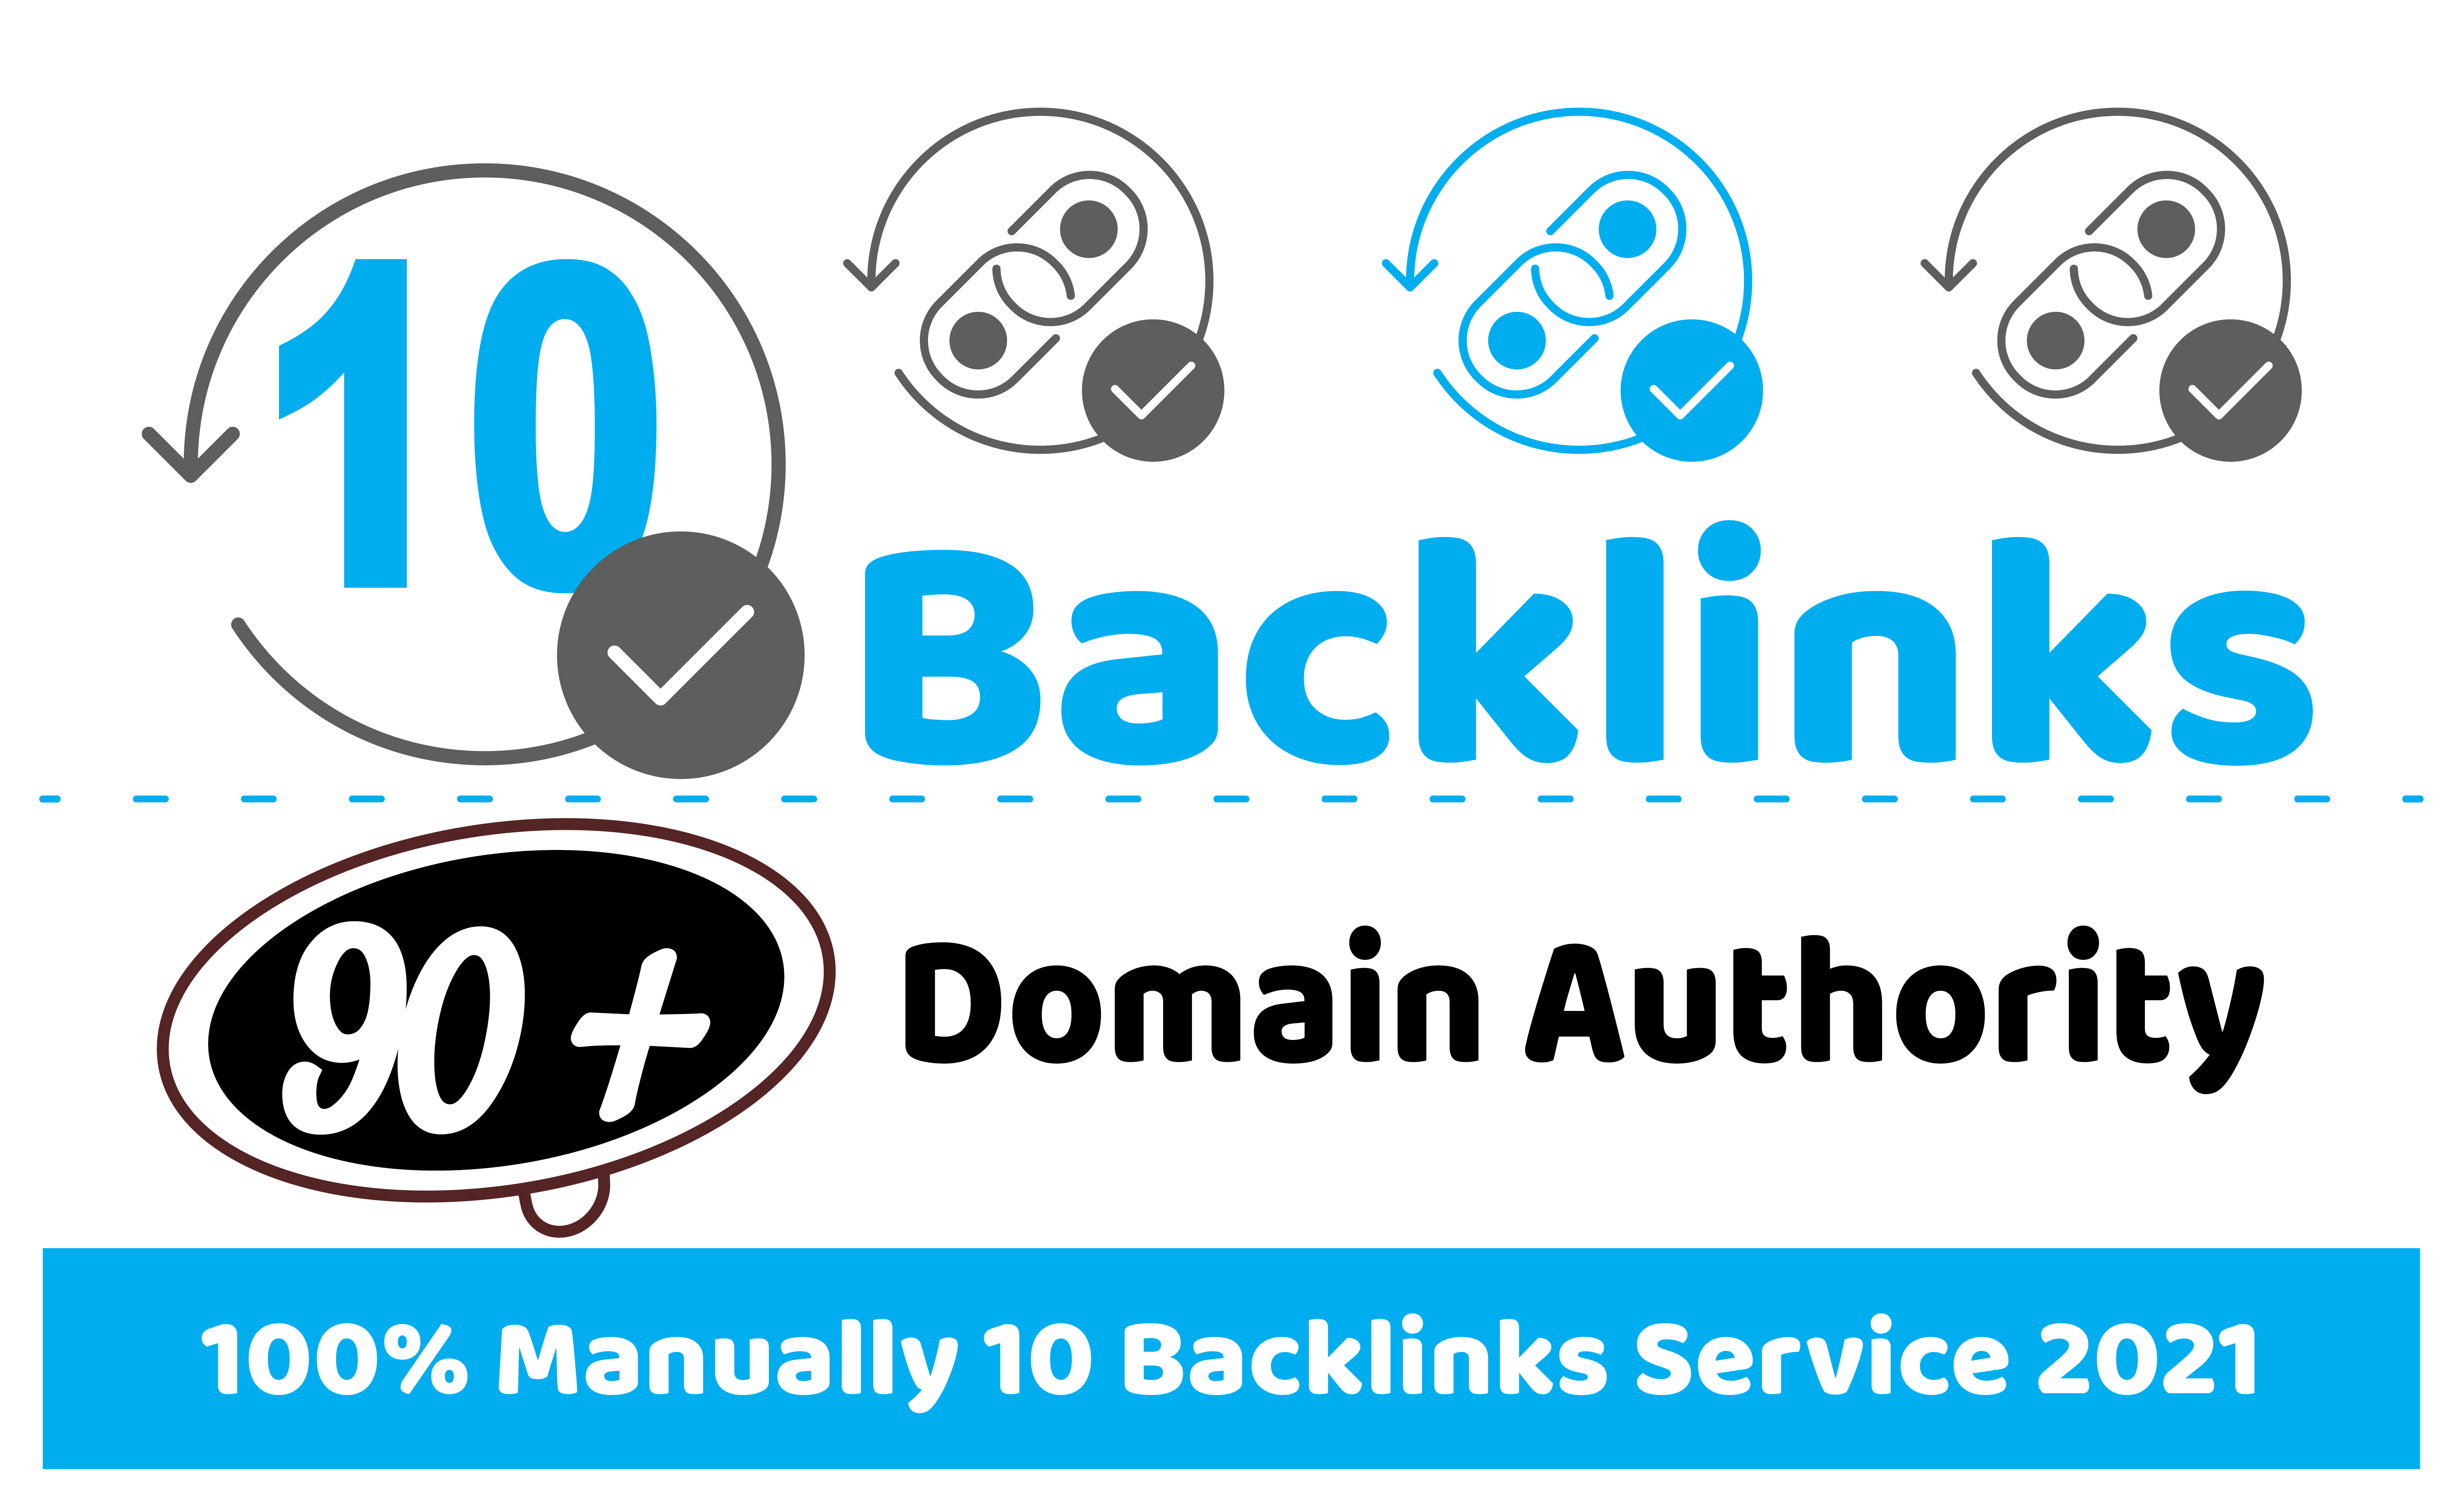 10 Contextual Web 2.0 90+ DA Seo Dofollow Manual Blogs Backlinks with Niche Related Articles and I